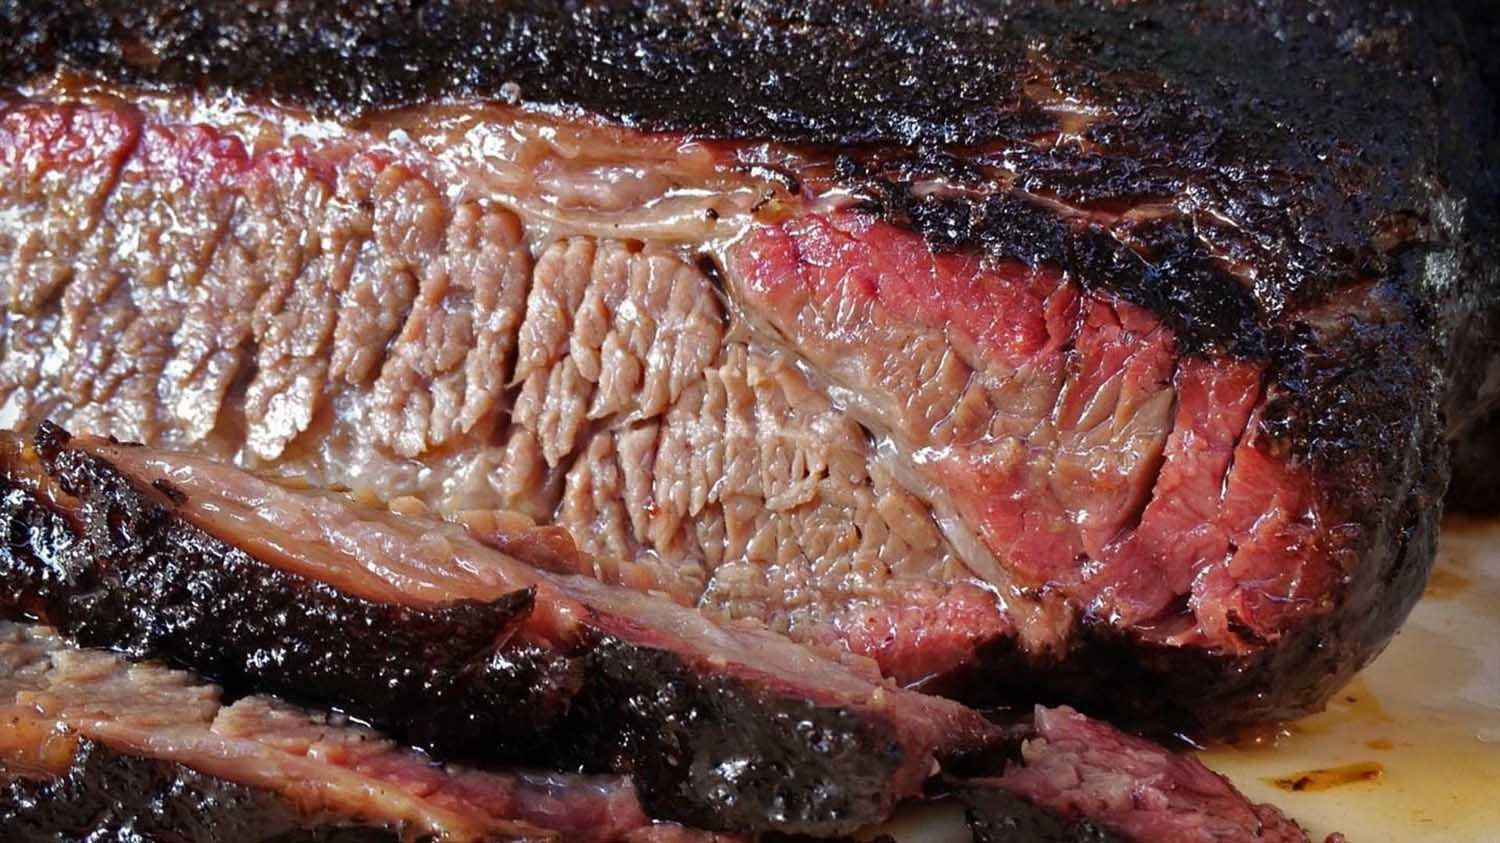 Slow Smoked Texas Barbecue Comes to San Marcos, California